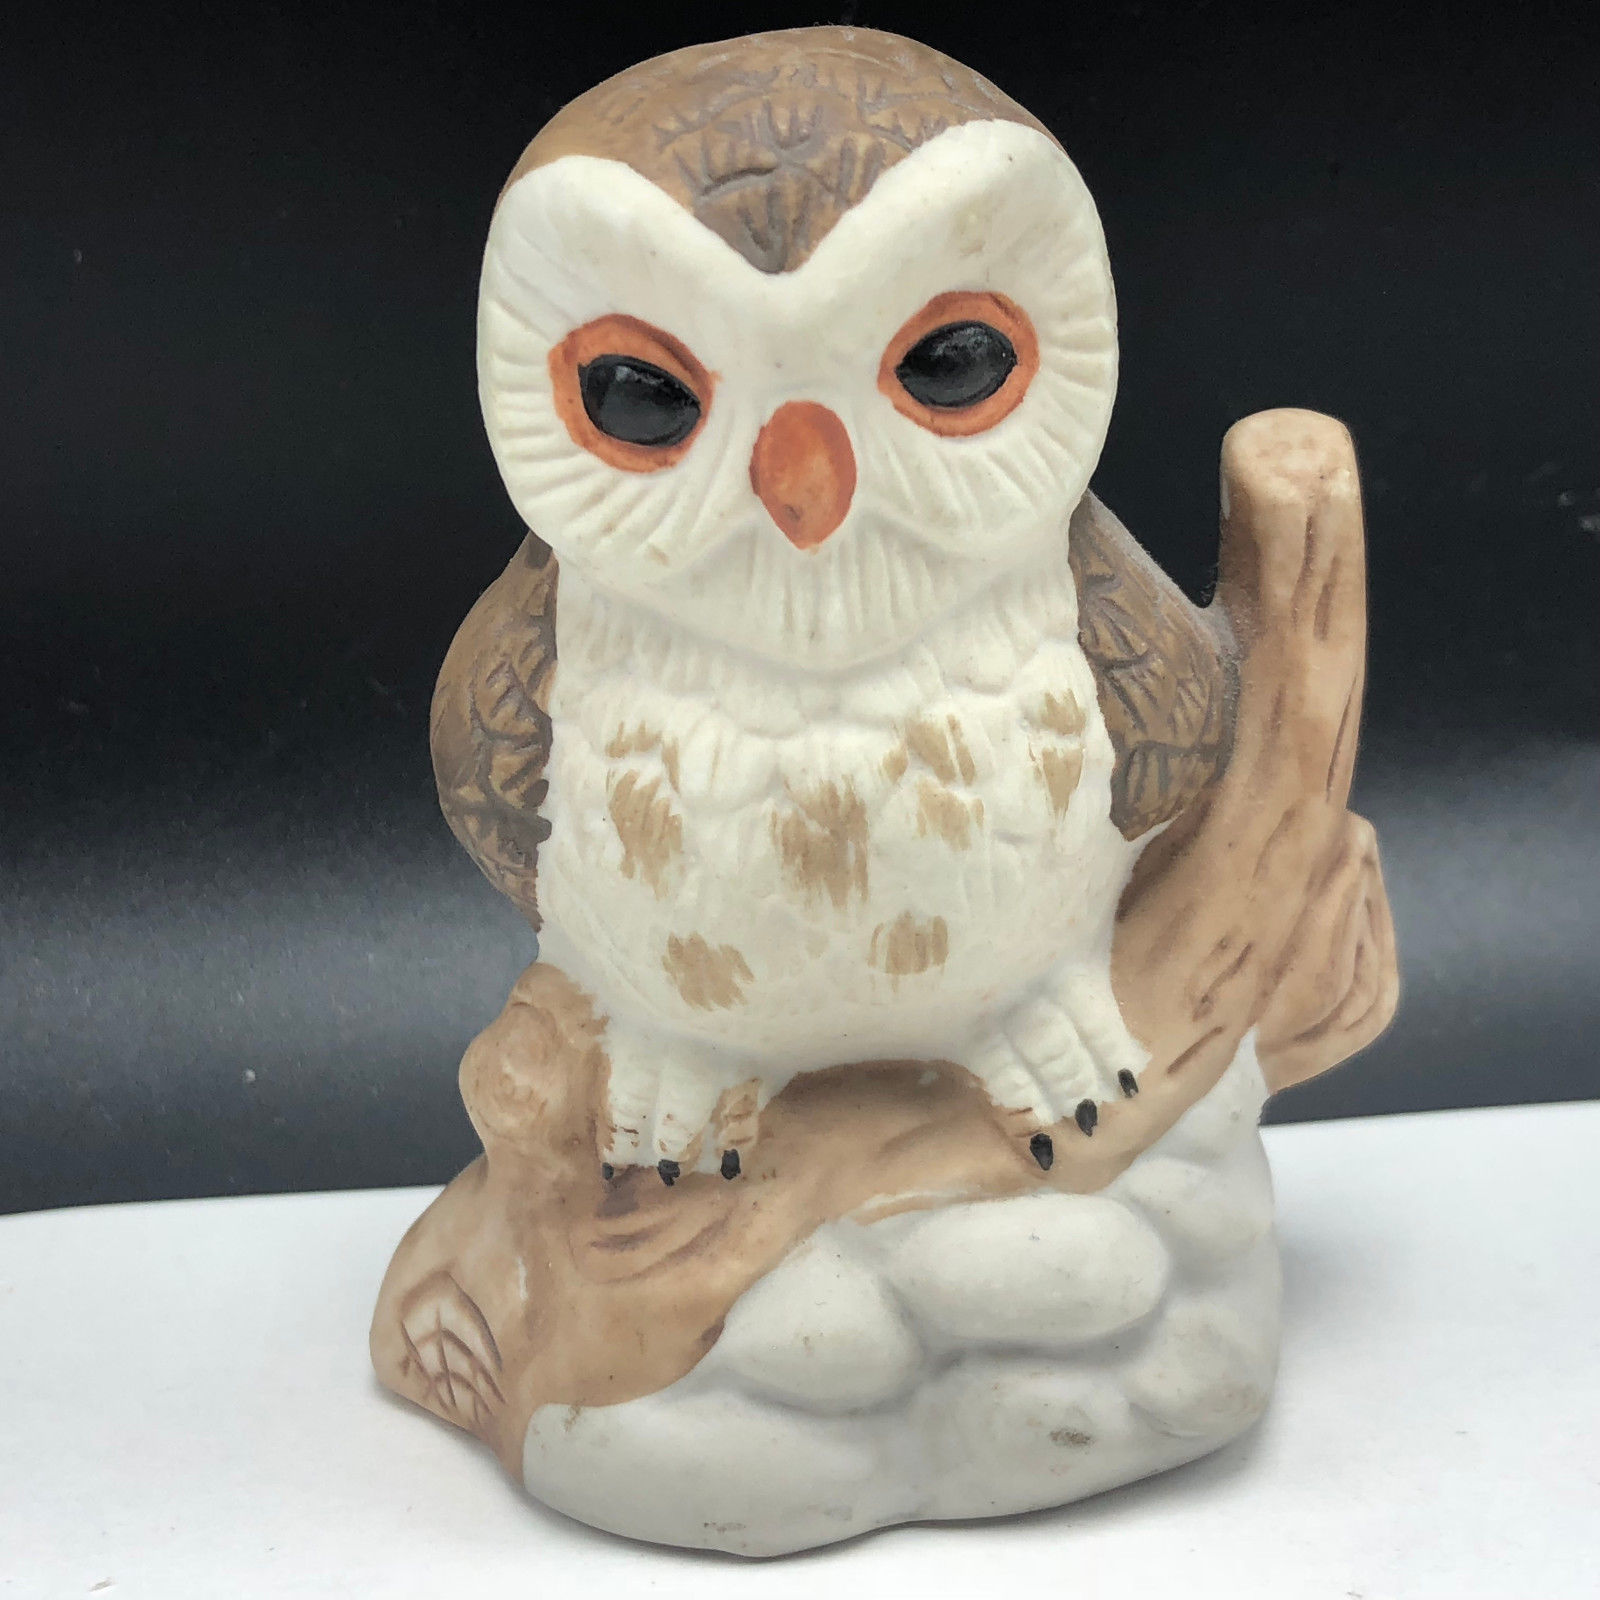 Primary image for VINTAGE OWL FIGURINE porcelain bird miniature statue sculpture spot breast perch